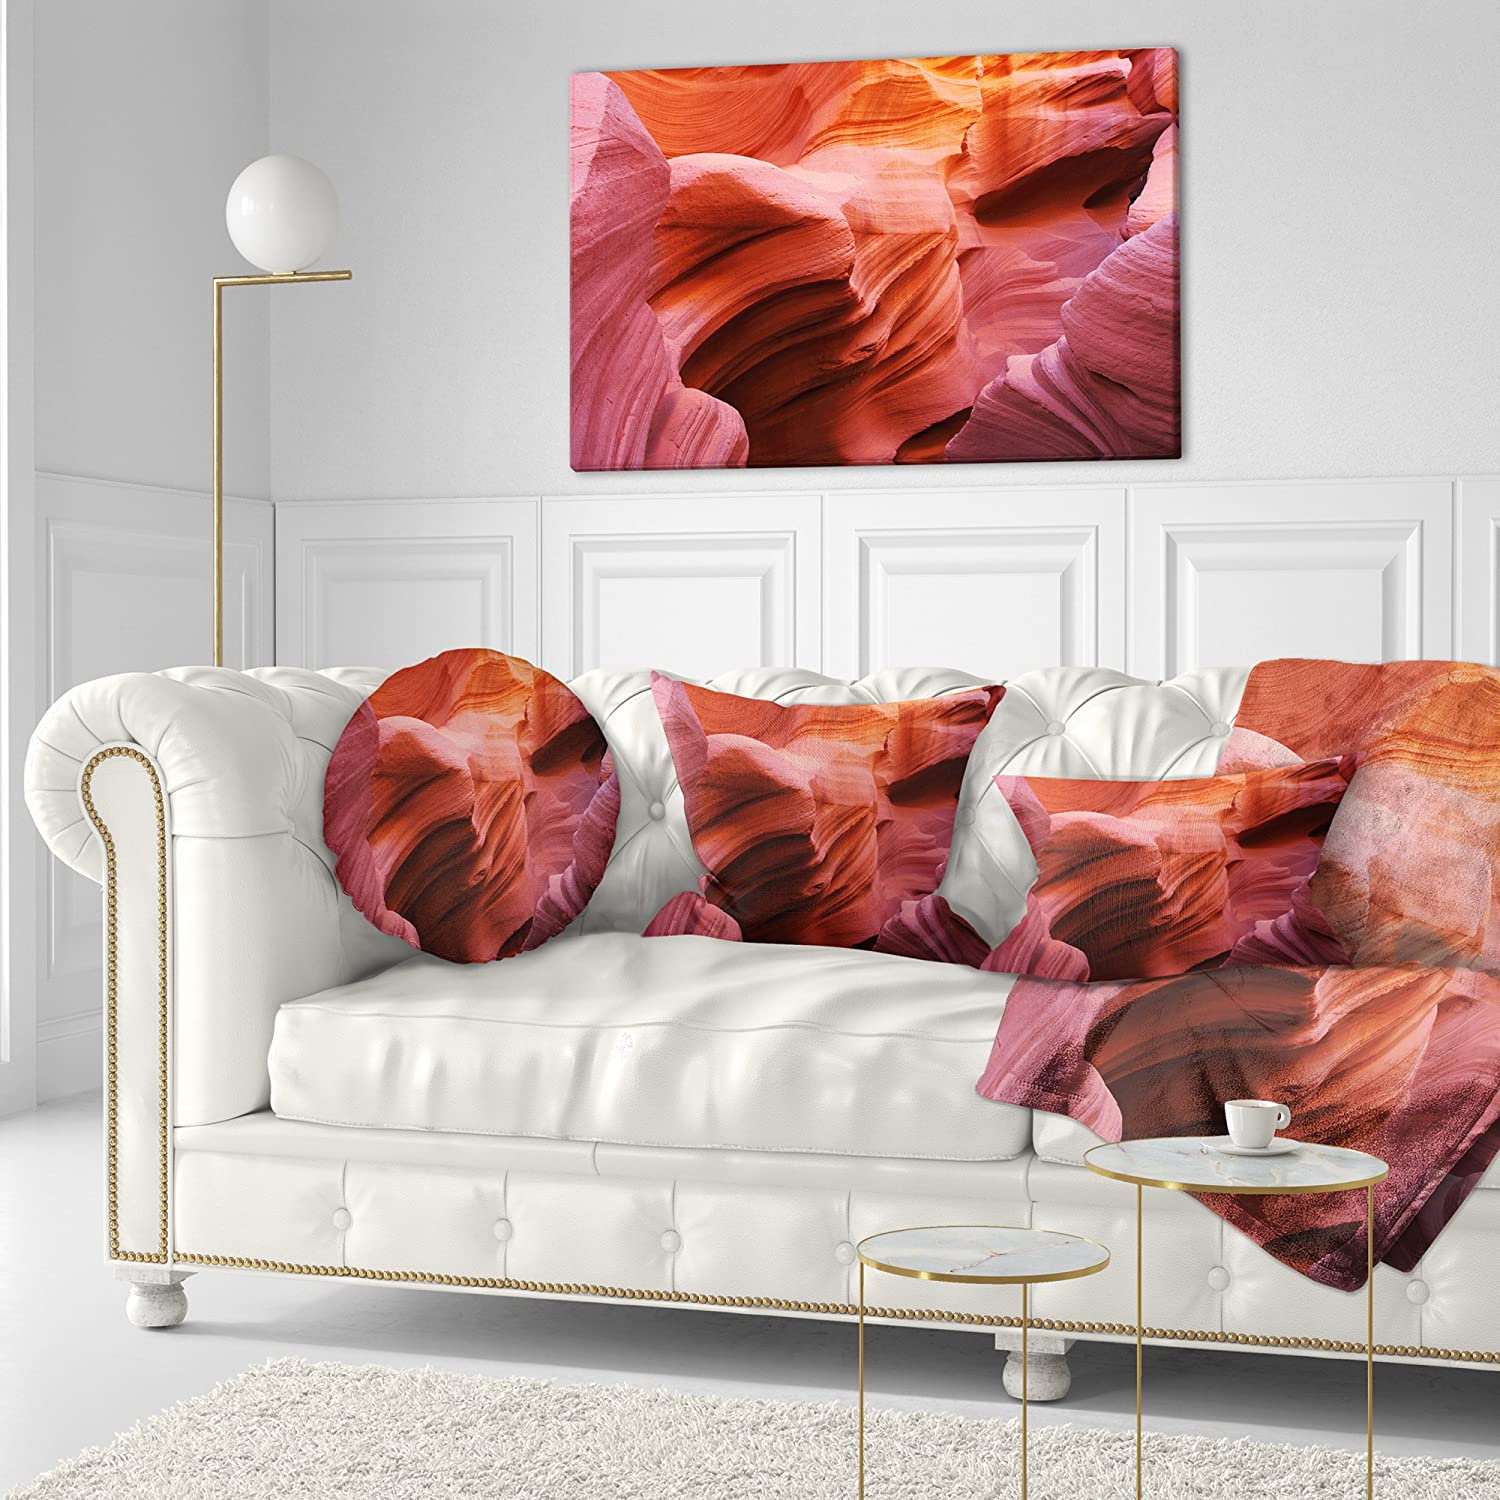 Designart CU8752-16-16-C Orange Red Antelope Canyon Landscape Photography Round Cushion Cover for Living Room Sofa Throw Pillow 16